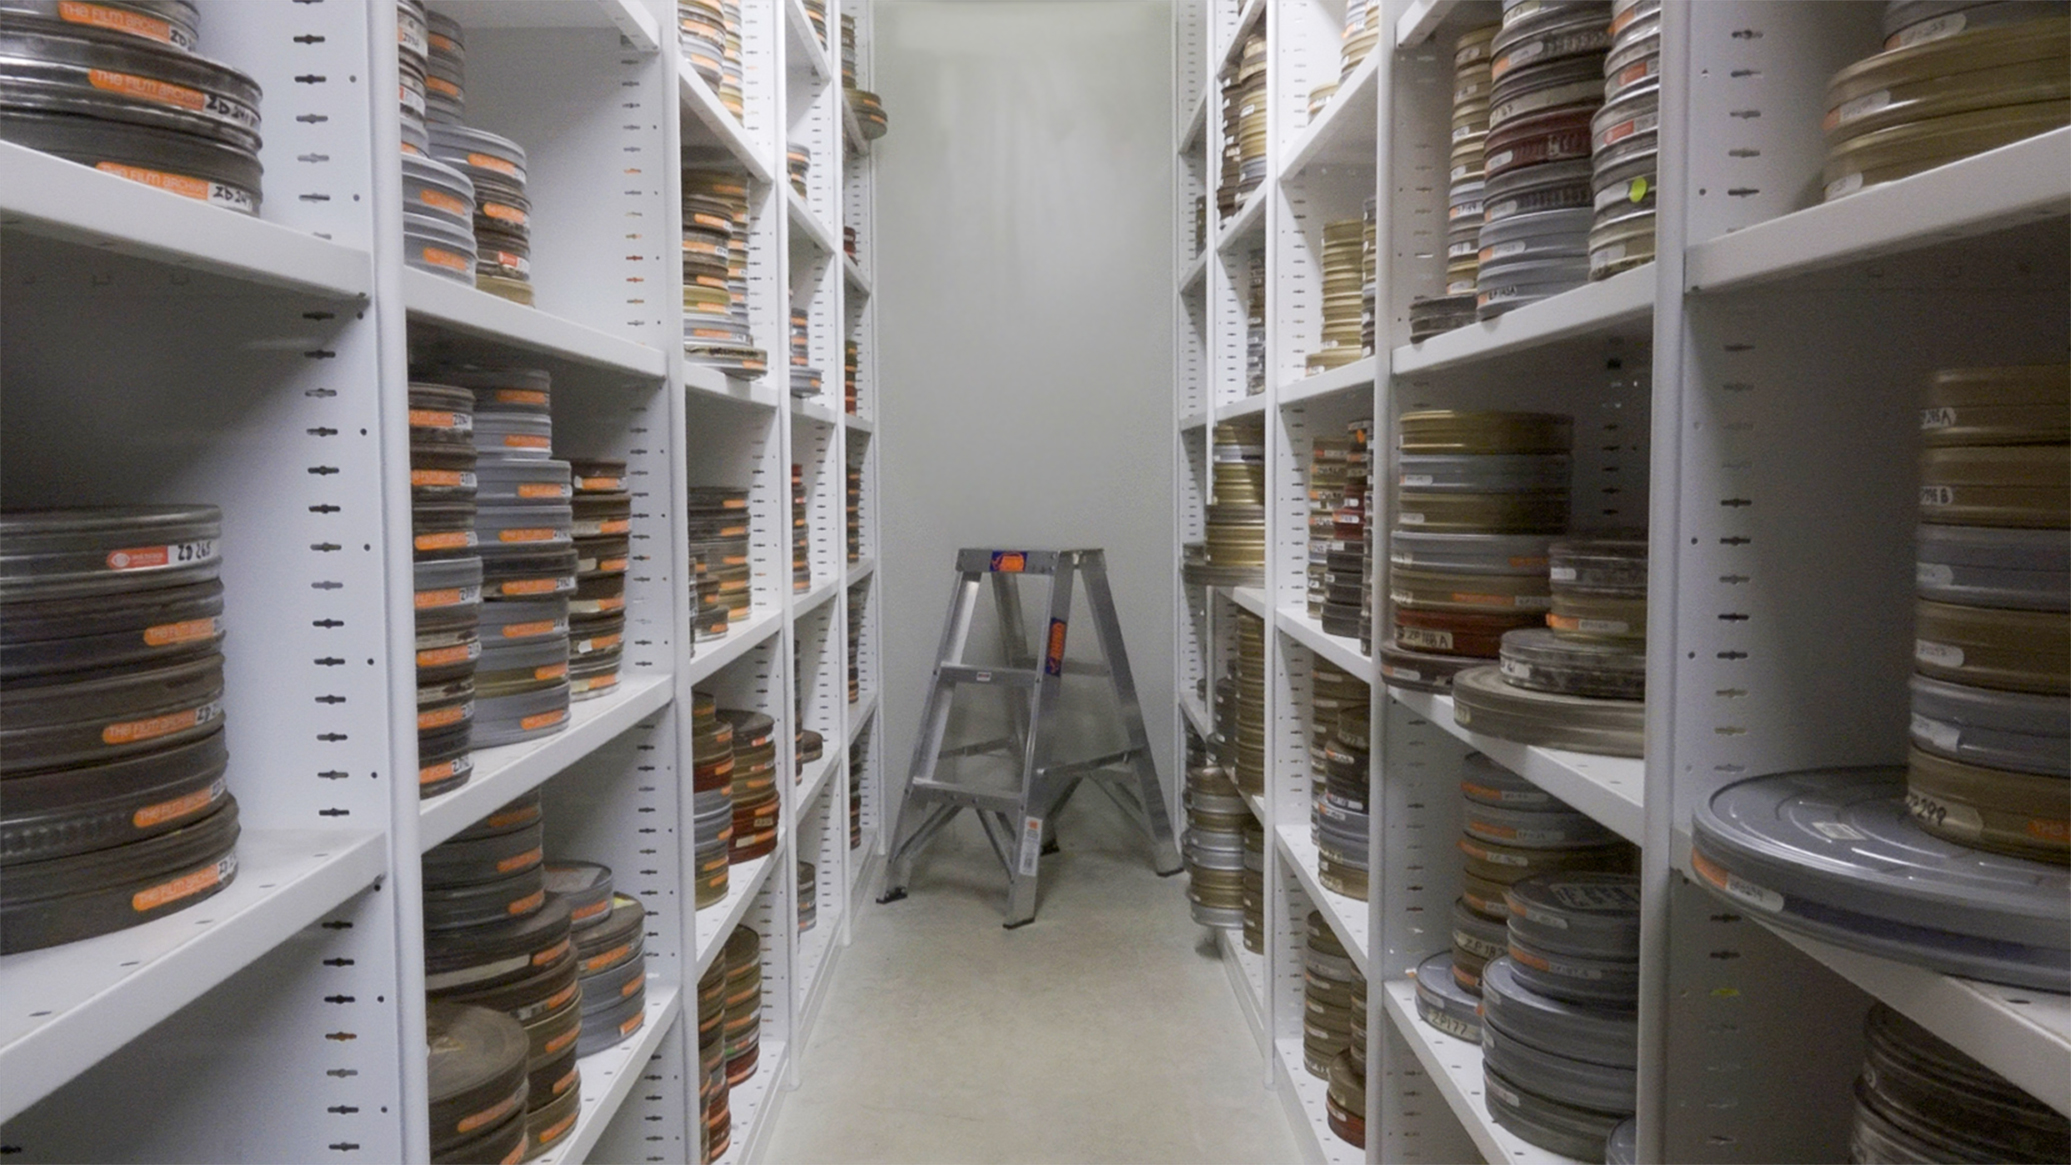 View of two long shelves with stacks of film cans